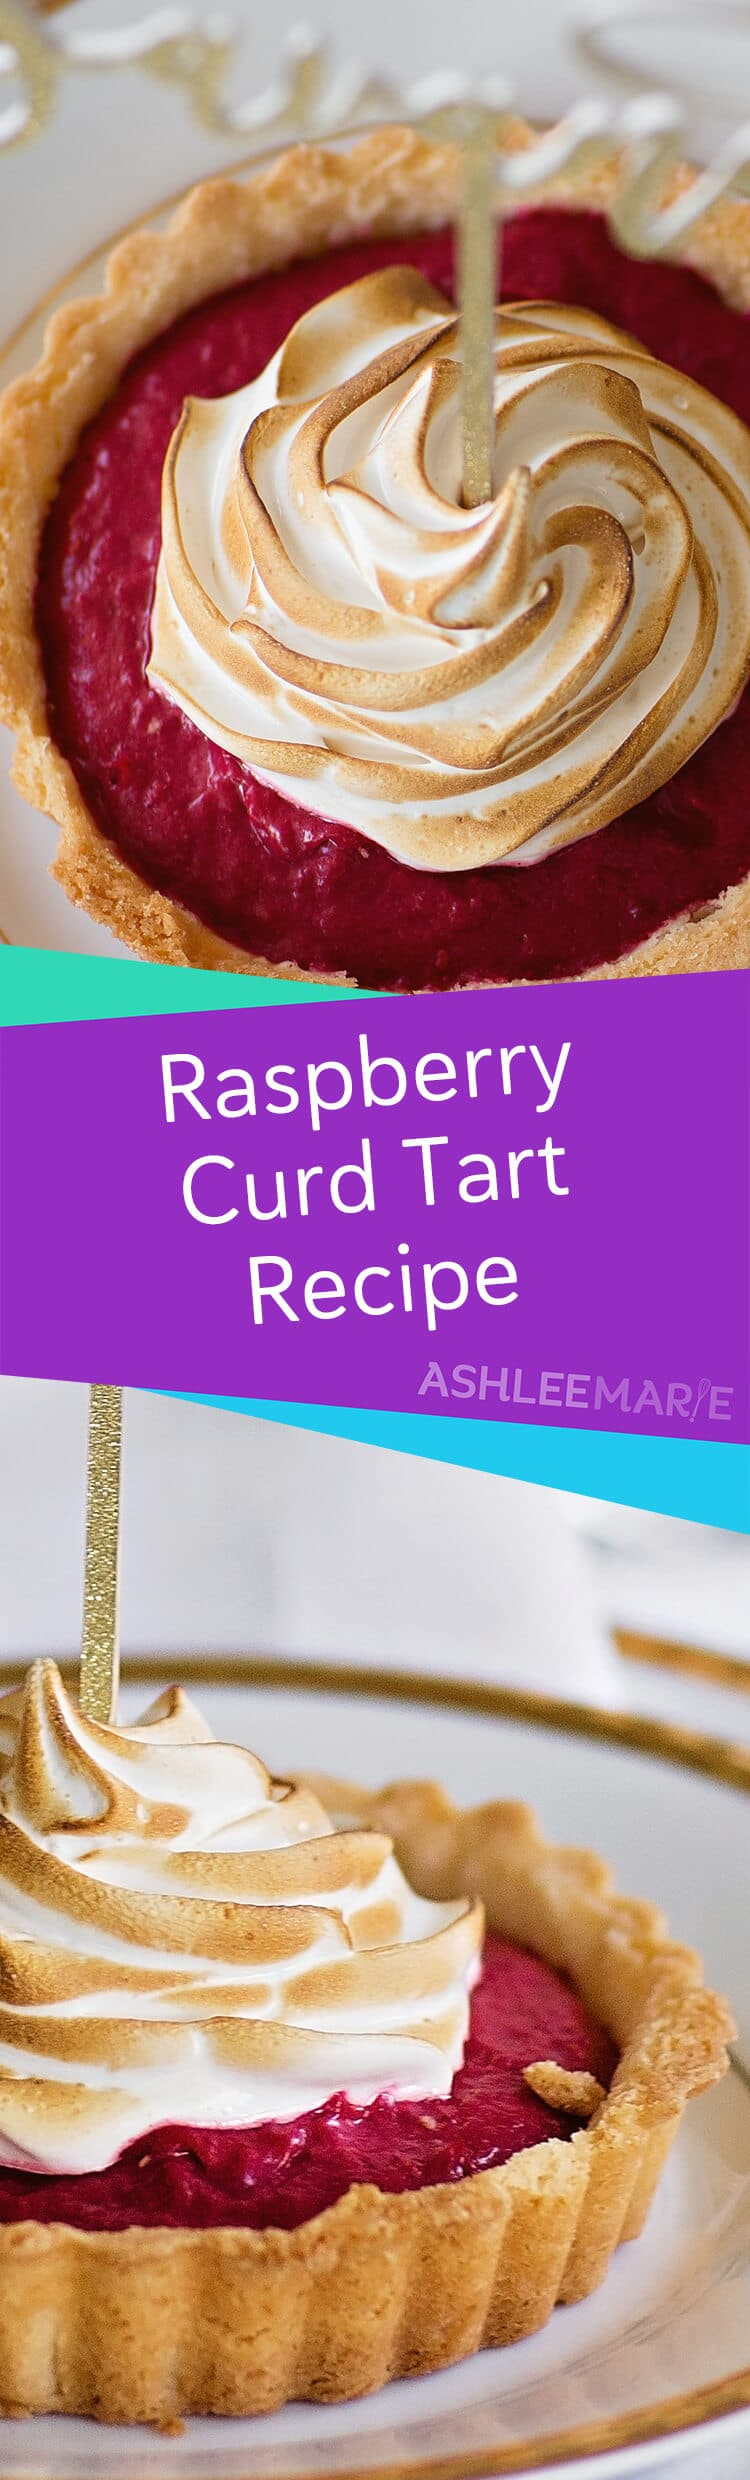 Raspberry Curd Tart recipe